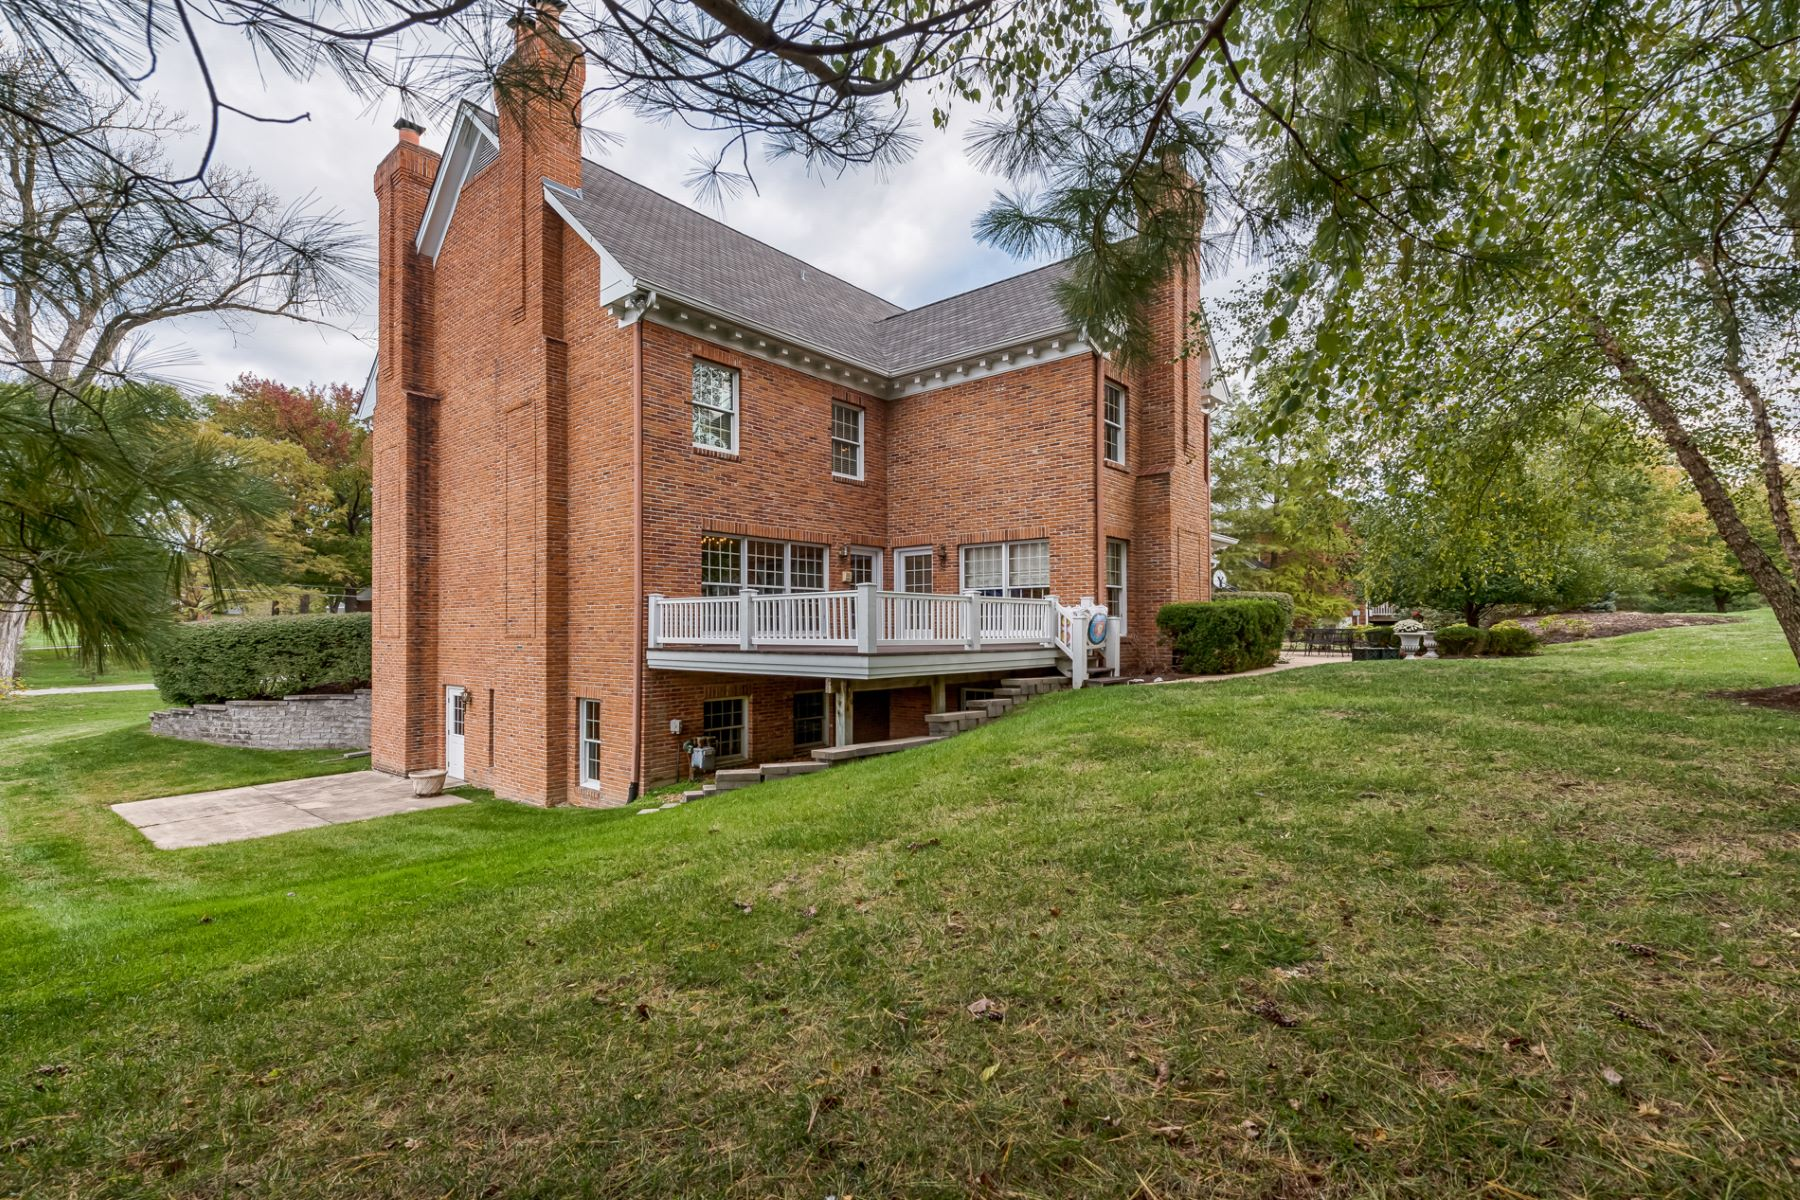 Additional photo for property listing at Steeplechase Lane 476 Steeplechase Lane St. Louis, Missouri 63131 United States